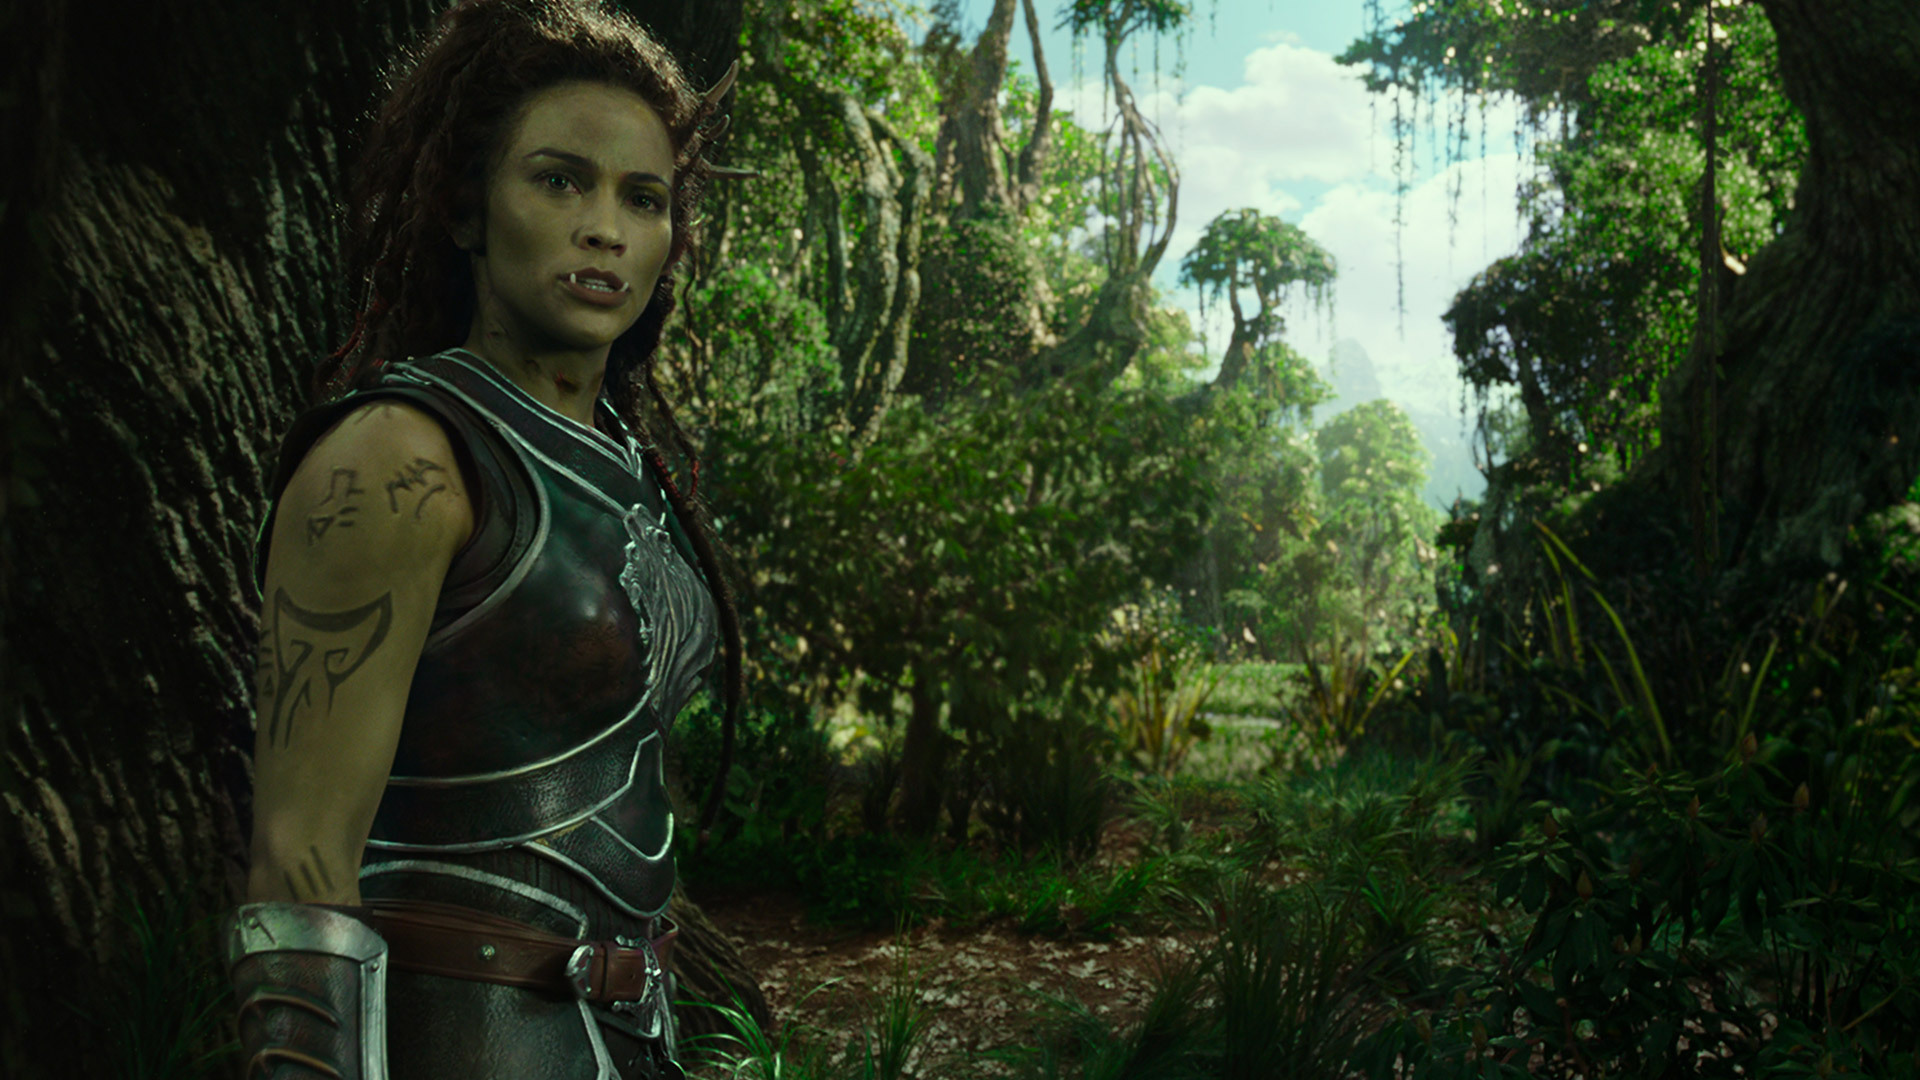 Warcraft Movie High Quality Wallpapers